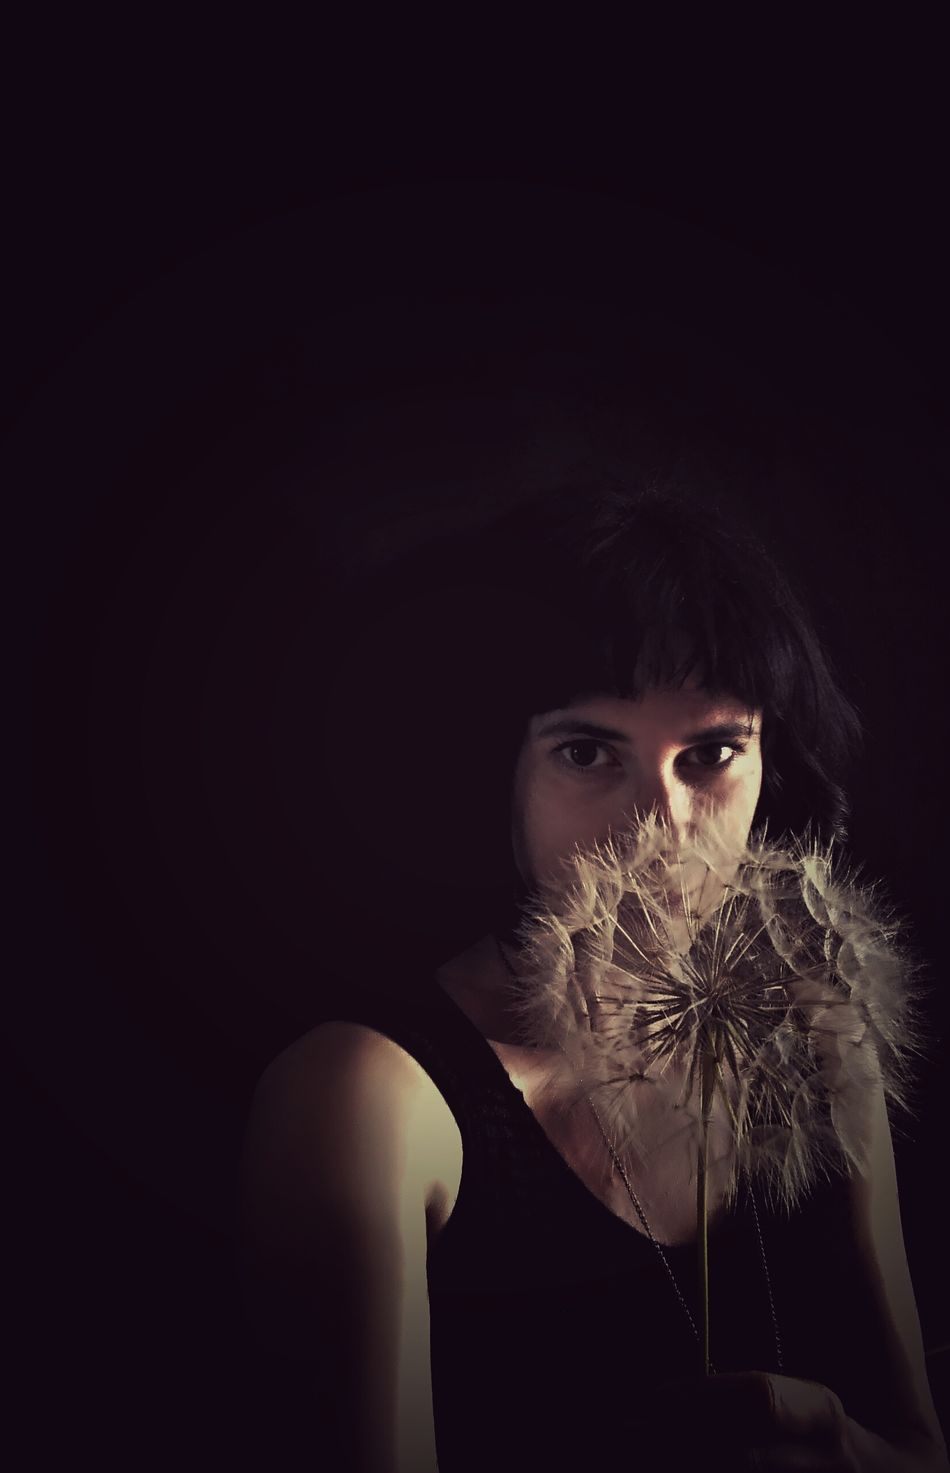 Me Giant Ball Dandelion Giant Dandelion Black Screen Portrait Of A Woman Poetry Dark Woman Portrait Black Background The Portraitist - 2016 EyeEm Awards